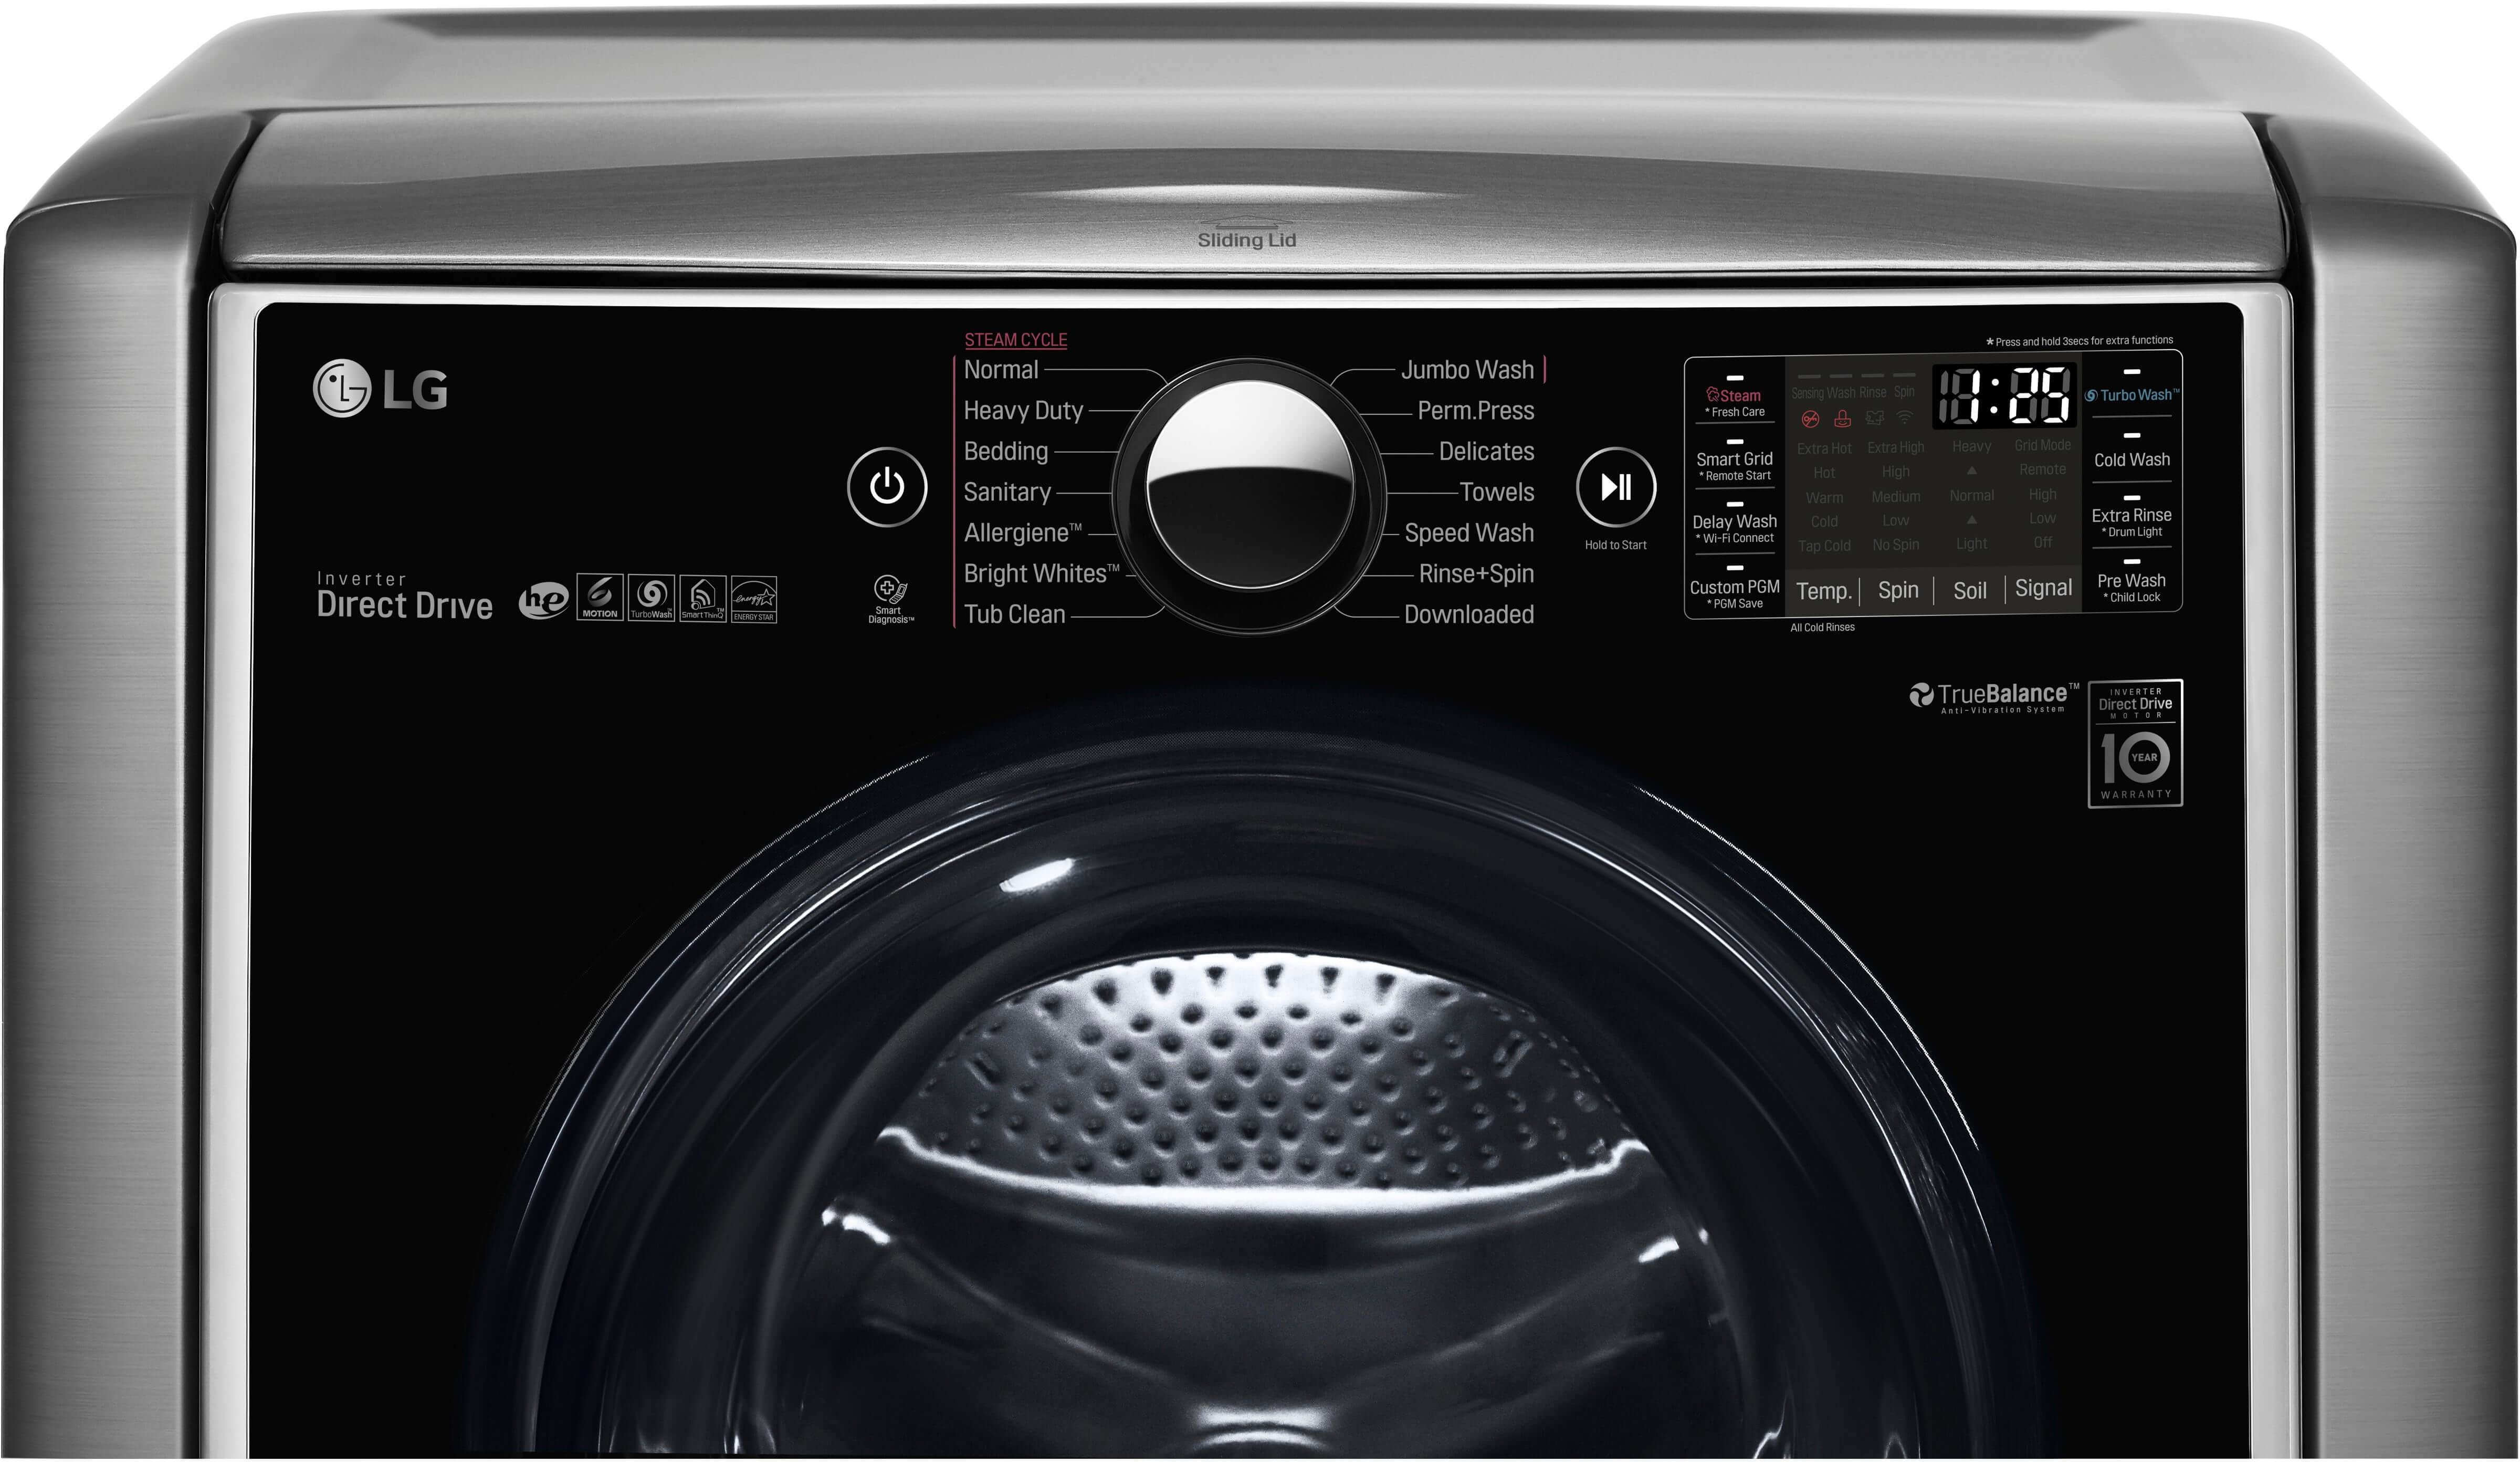 LG washing machine – UE and uE error codes